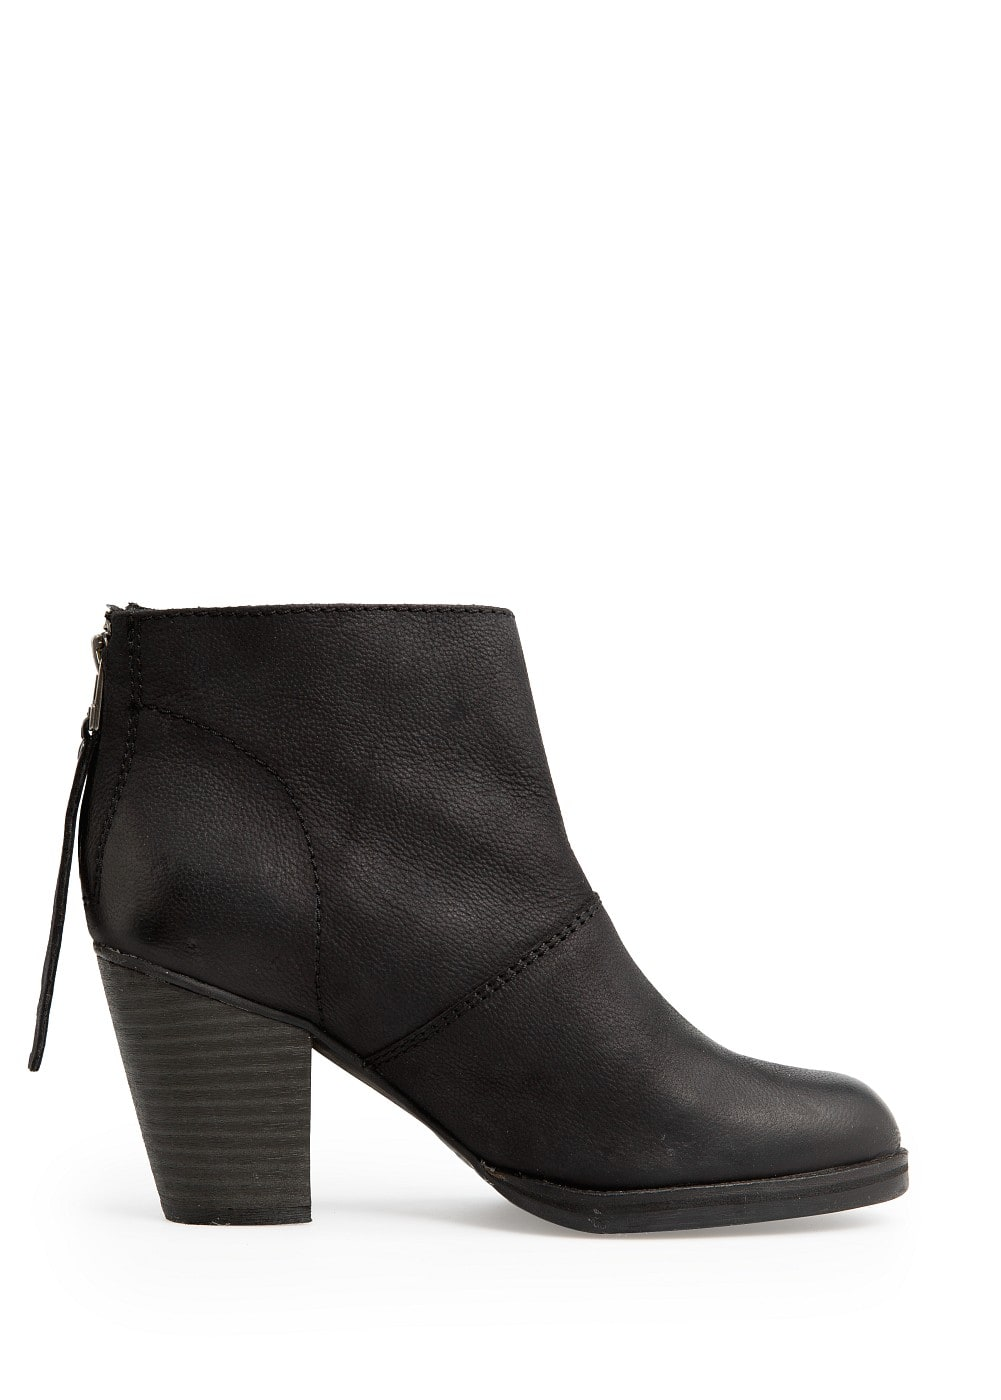 Wooden heel leather ankle boots | MANGO